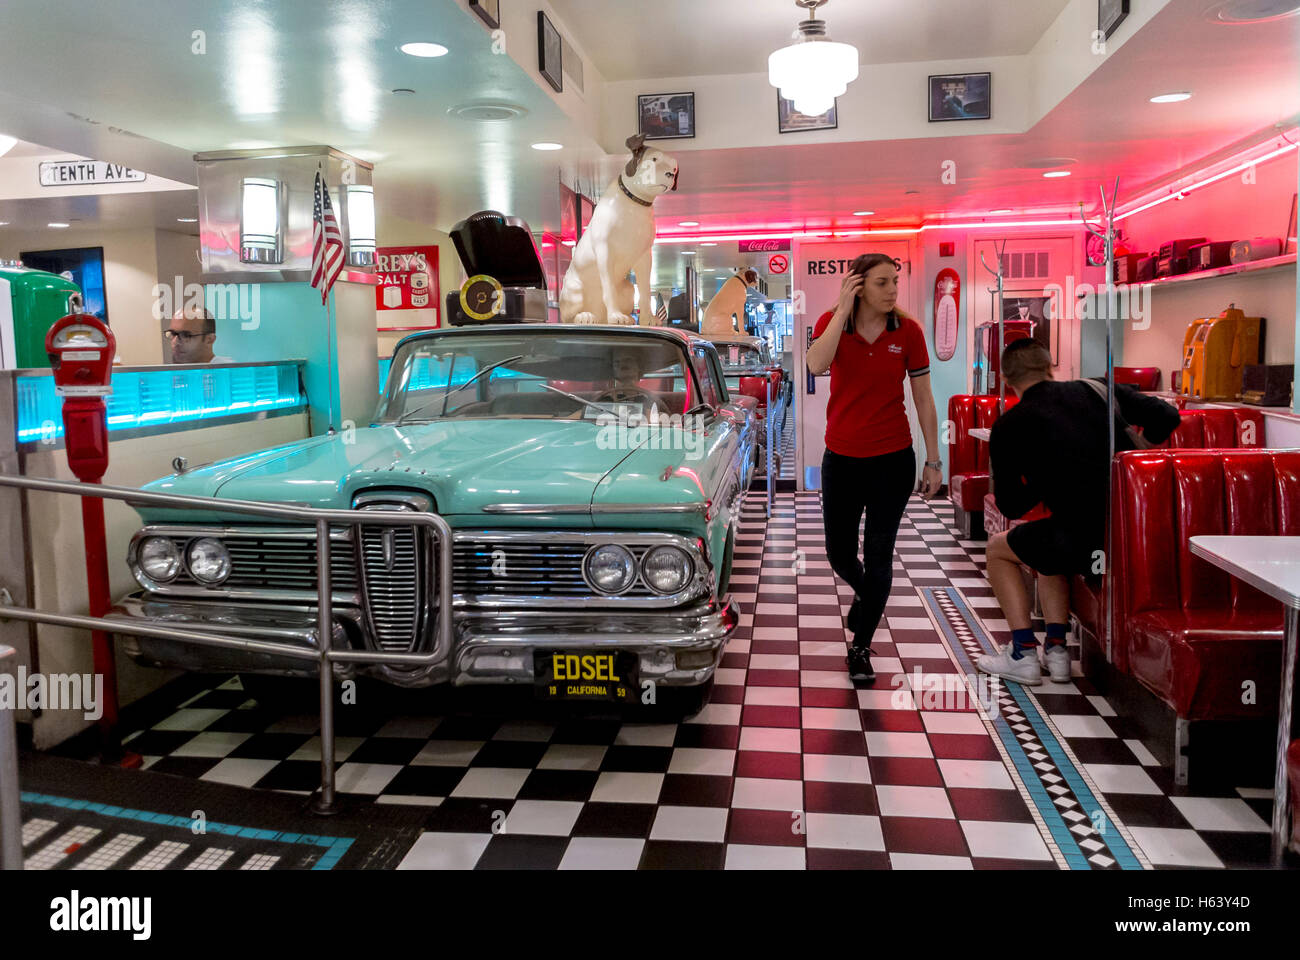 san francisco ca usa waitress walking inside lori 39 s american diner stock photo 124247661 alamy. Black Bedroom Furniture Sets. Home Design Ideas